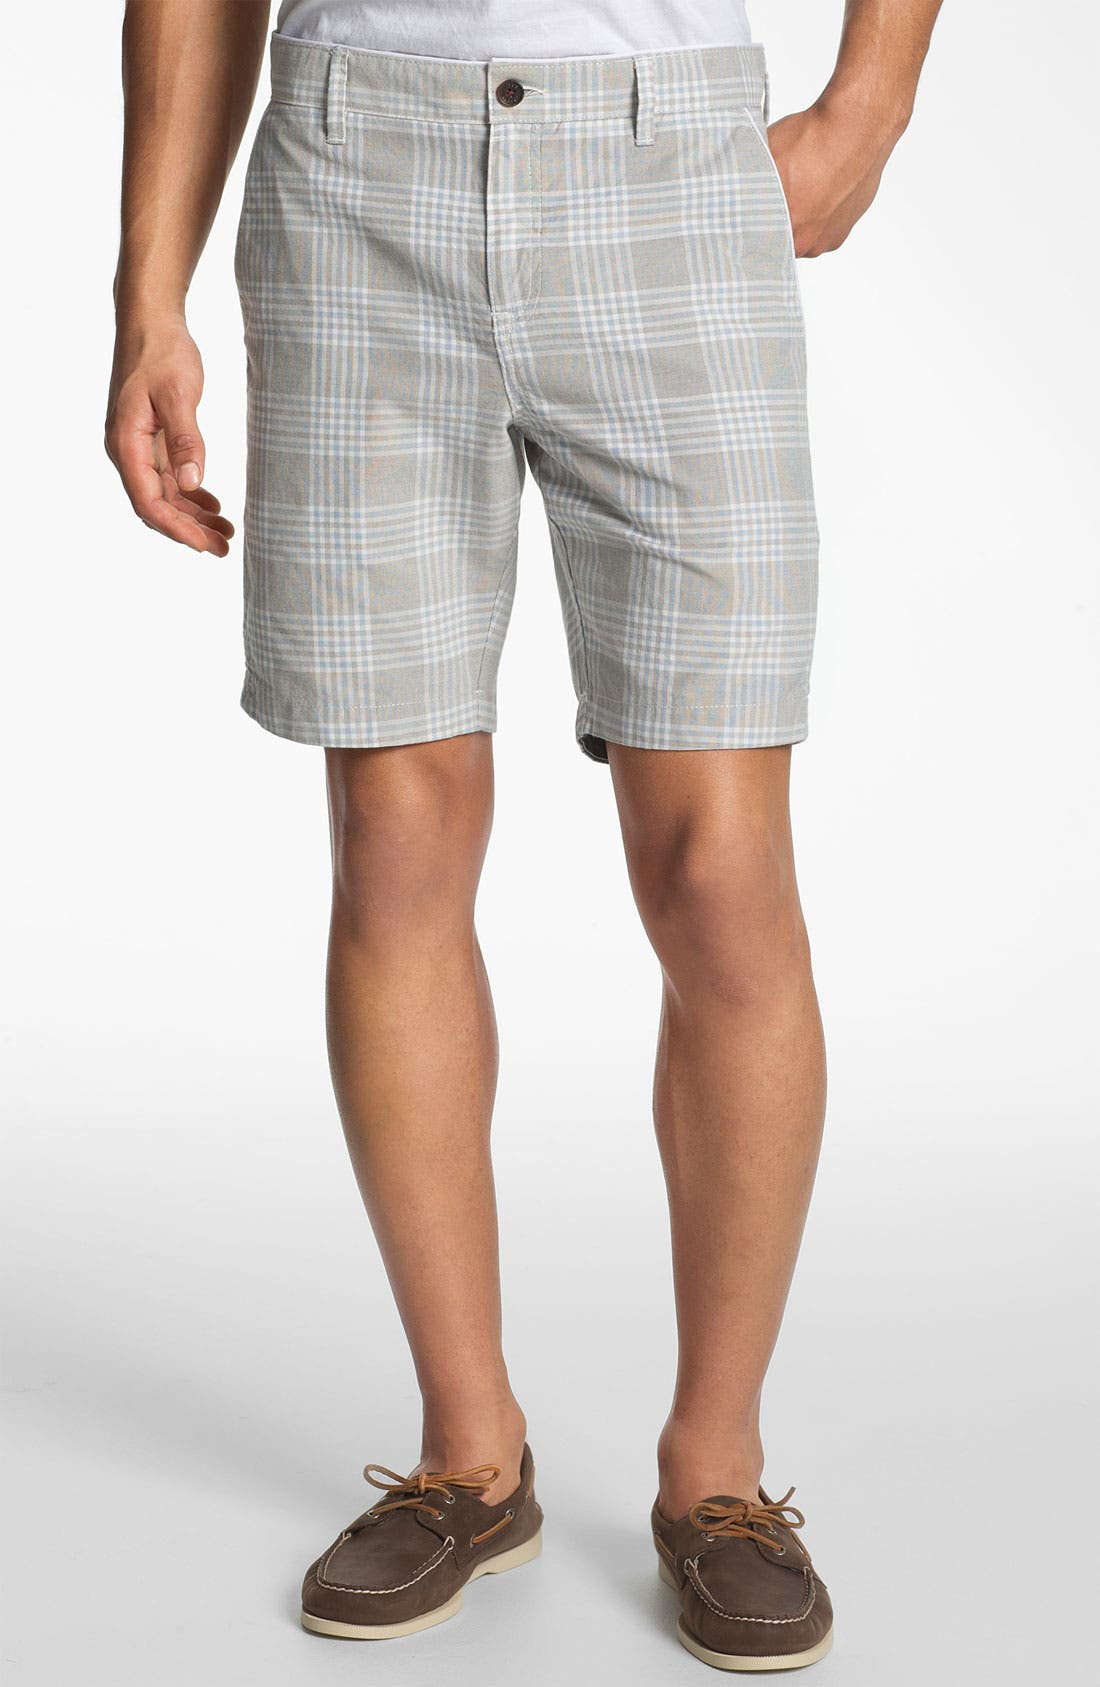 Alternate Image 1 Selected - Ted Baker London 'Yaxley Check' Shorts